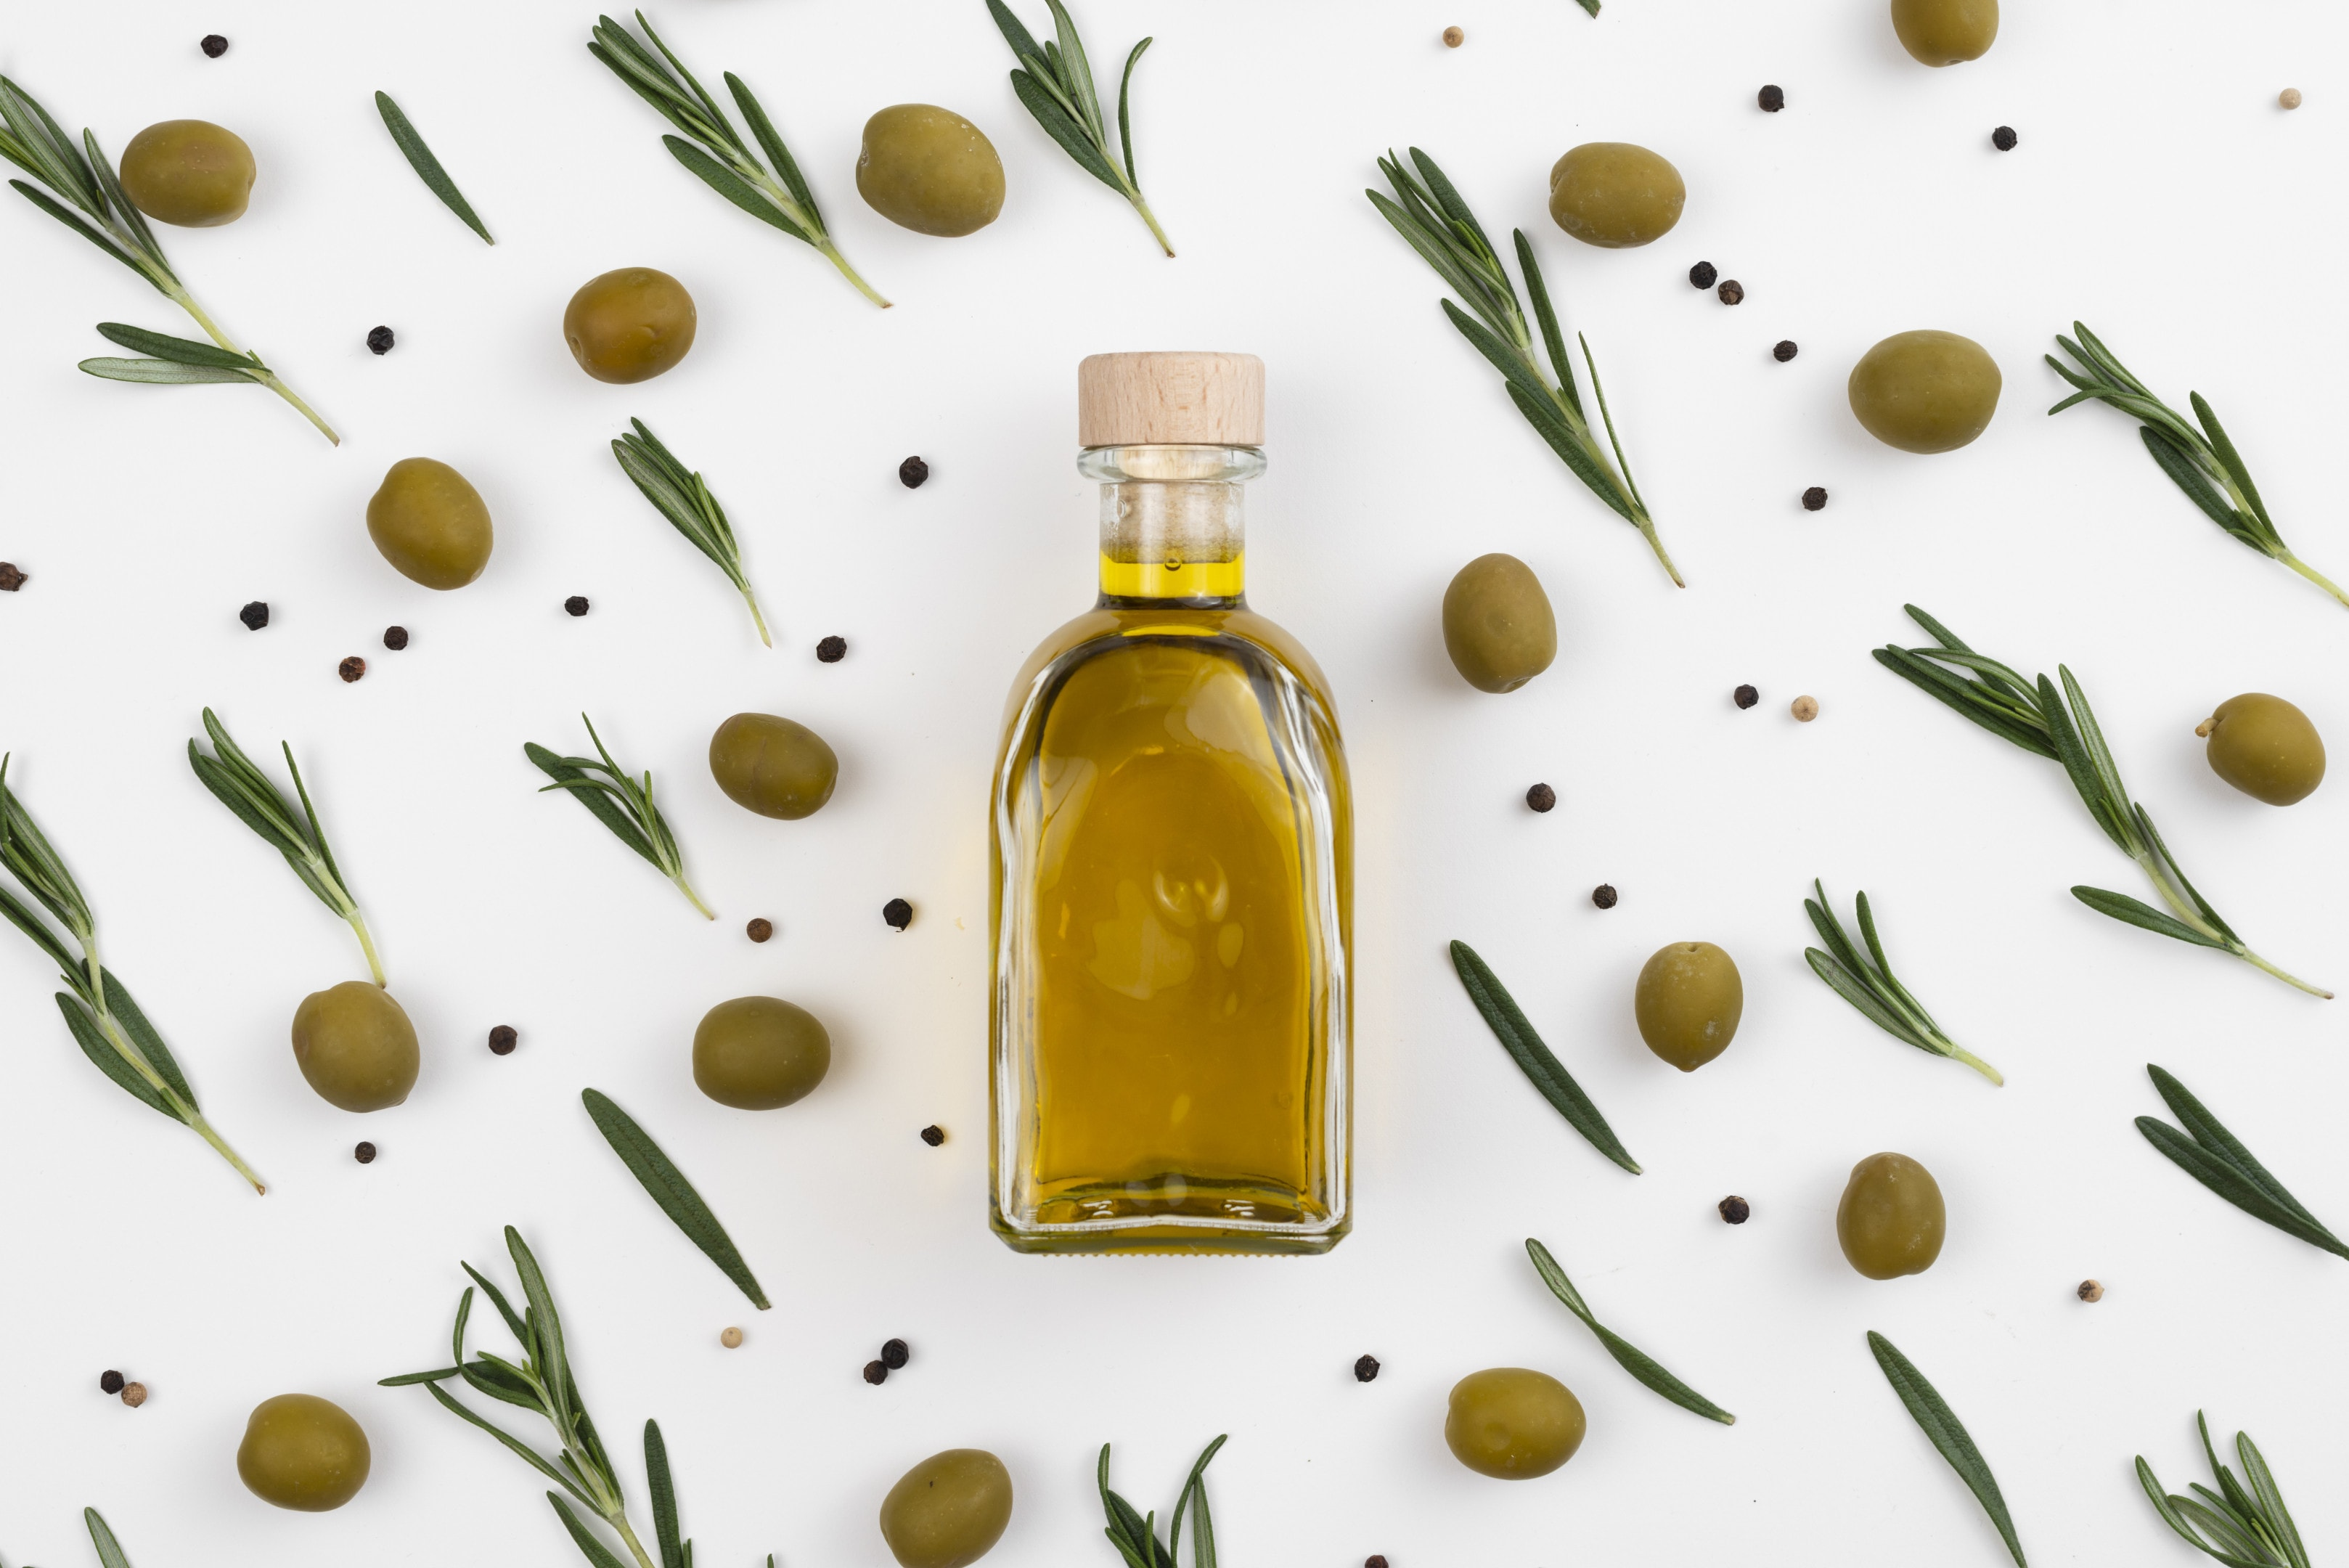 Arrangement of olive leaves and olive oil bottle on white background